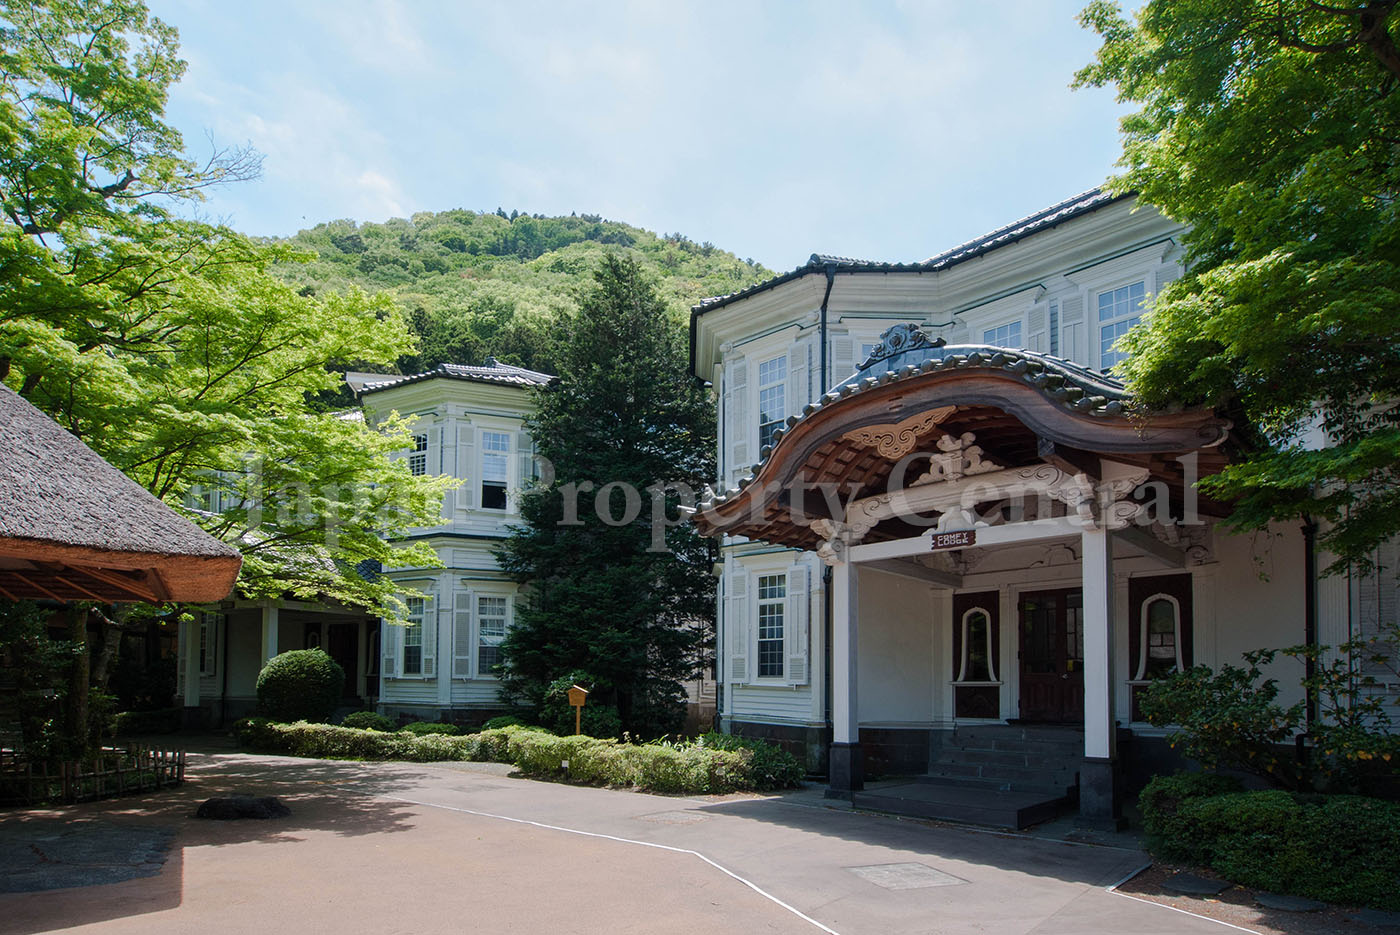 Hakone Fujiya Hotel to close for 2 years for earthquake retrofitting